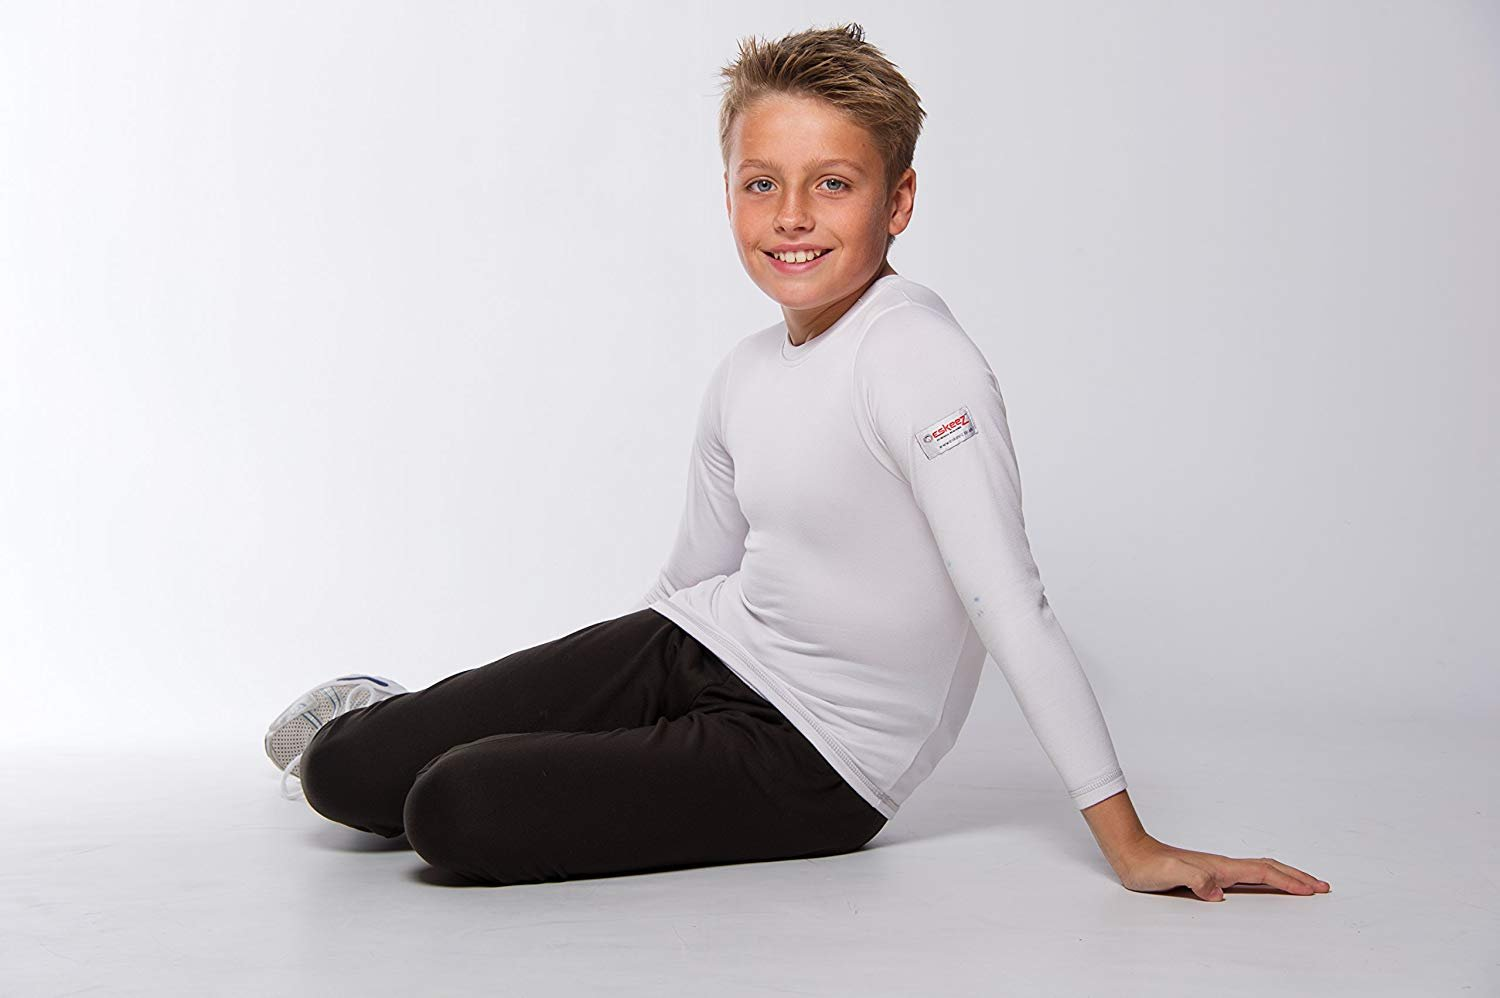 Eskeez Thermal Base Layer Underwear Long Sleeved Junior Top - For Children - Suitable for All Outdoor Activities - White